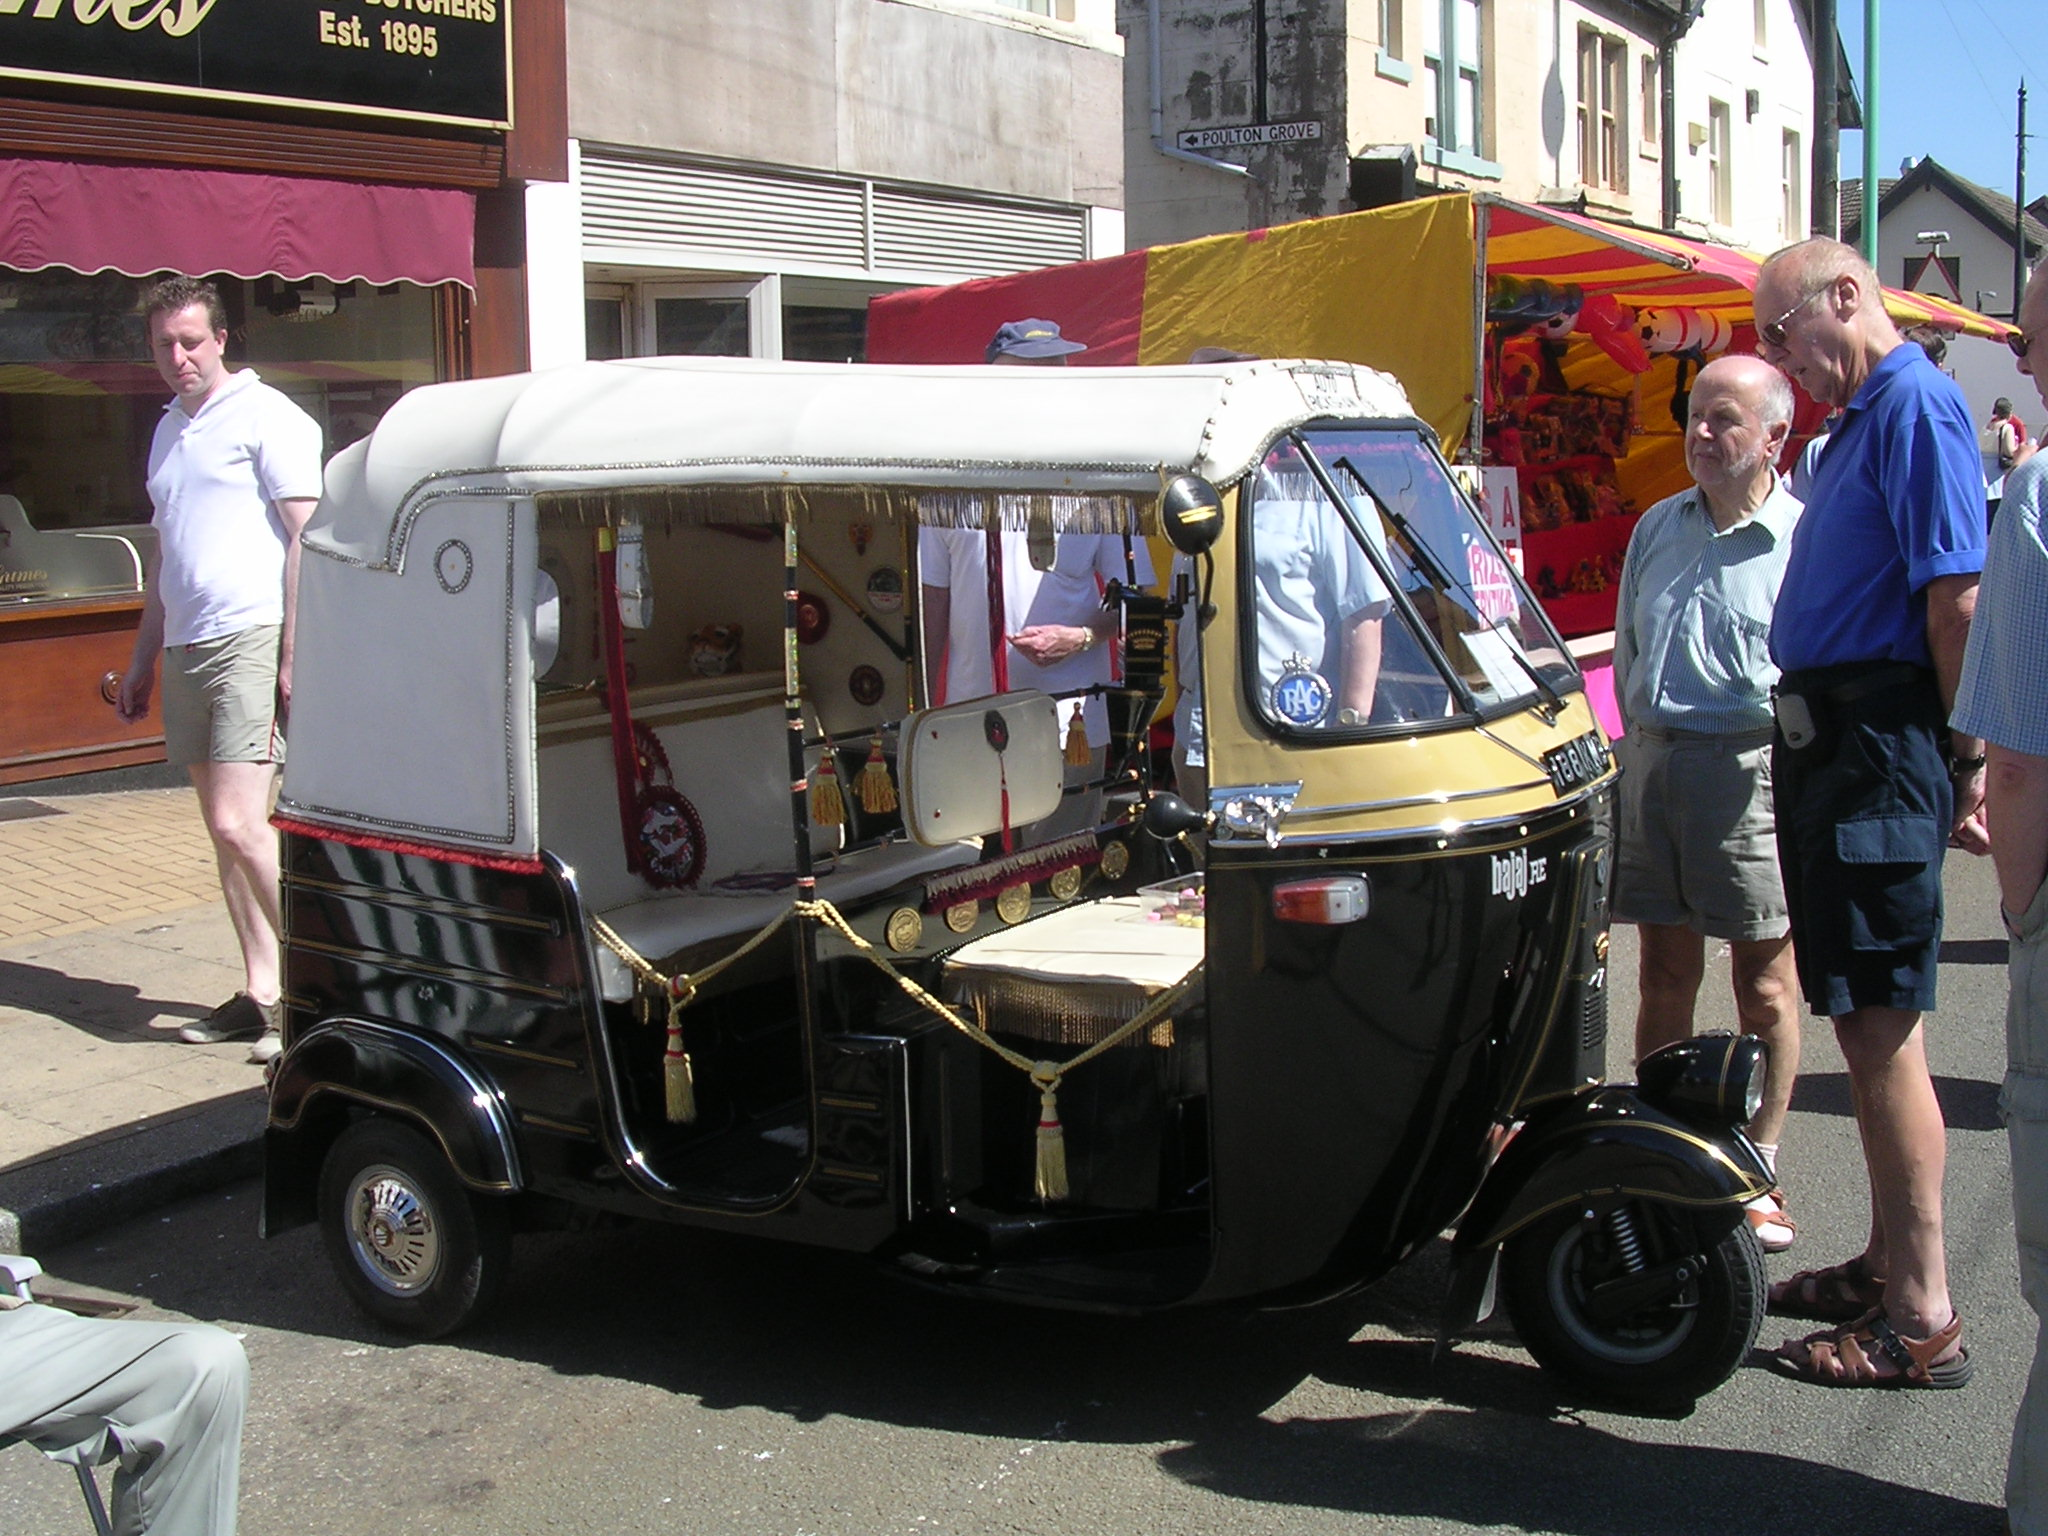 auto rickshaw Find the perfect auto rickshaw stock photos and editorial news pictures from  getty images download premium images you can't get anywhere else.